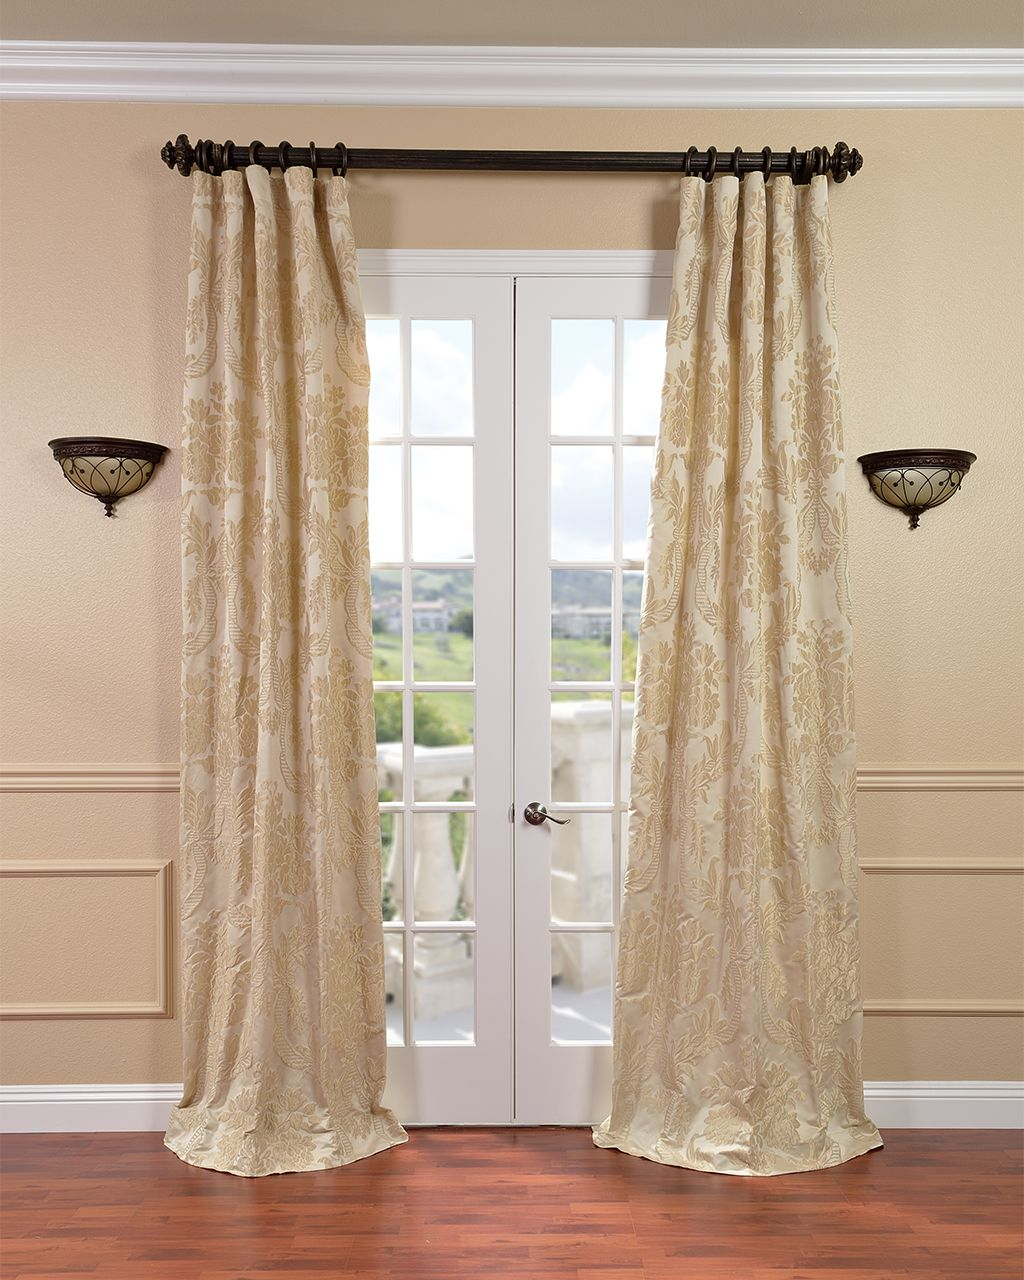 These Faux Silk Jacquard Curtains Add A Touch Of Elegance To Your